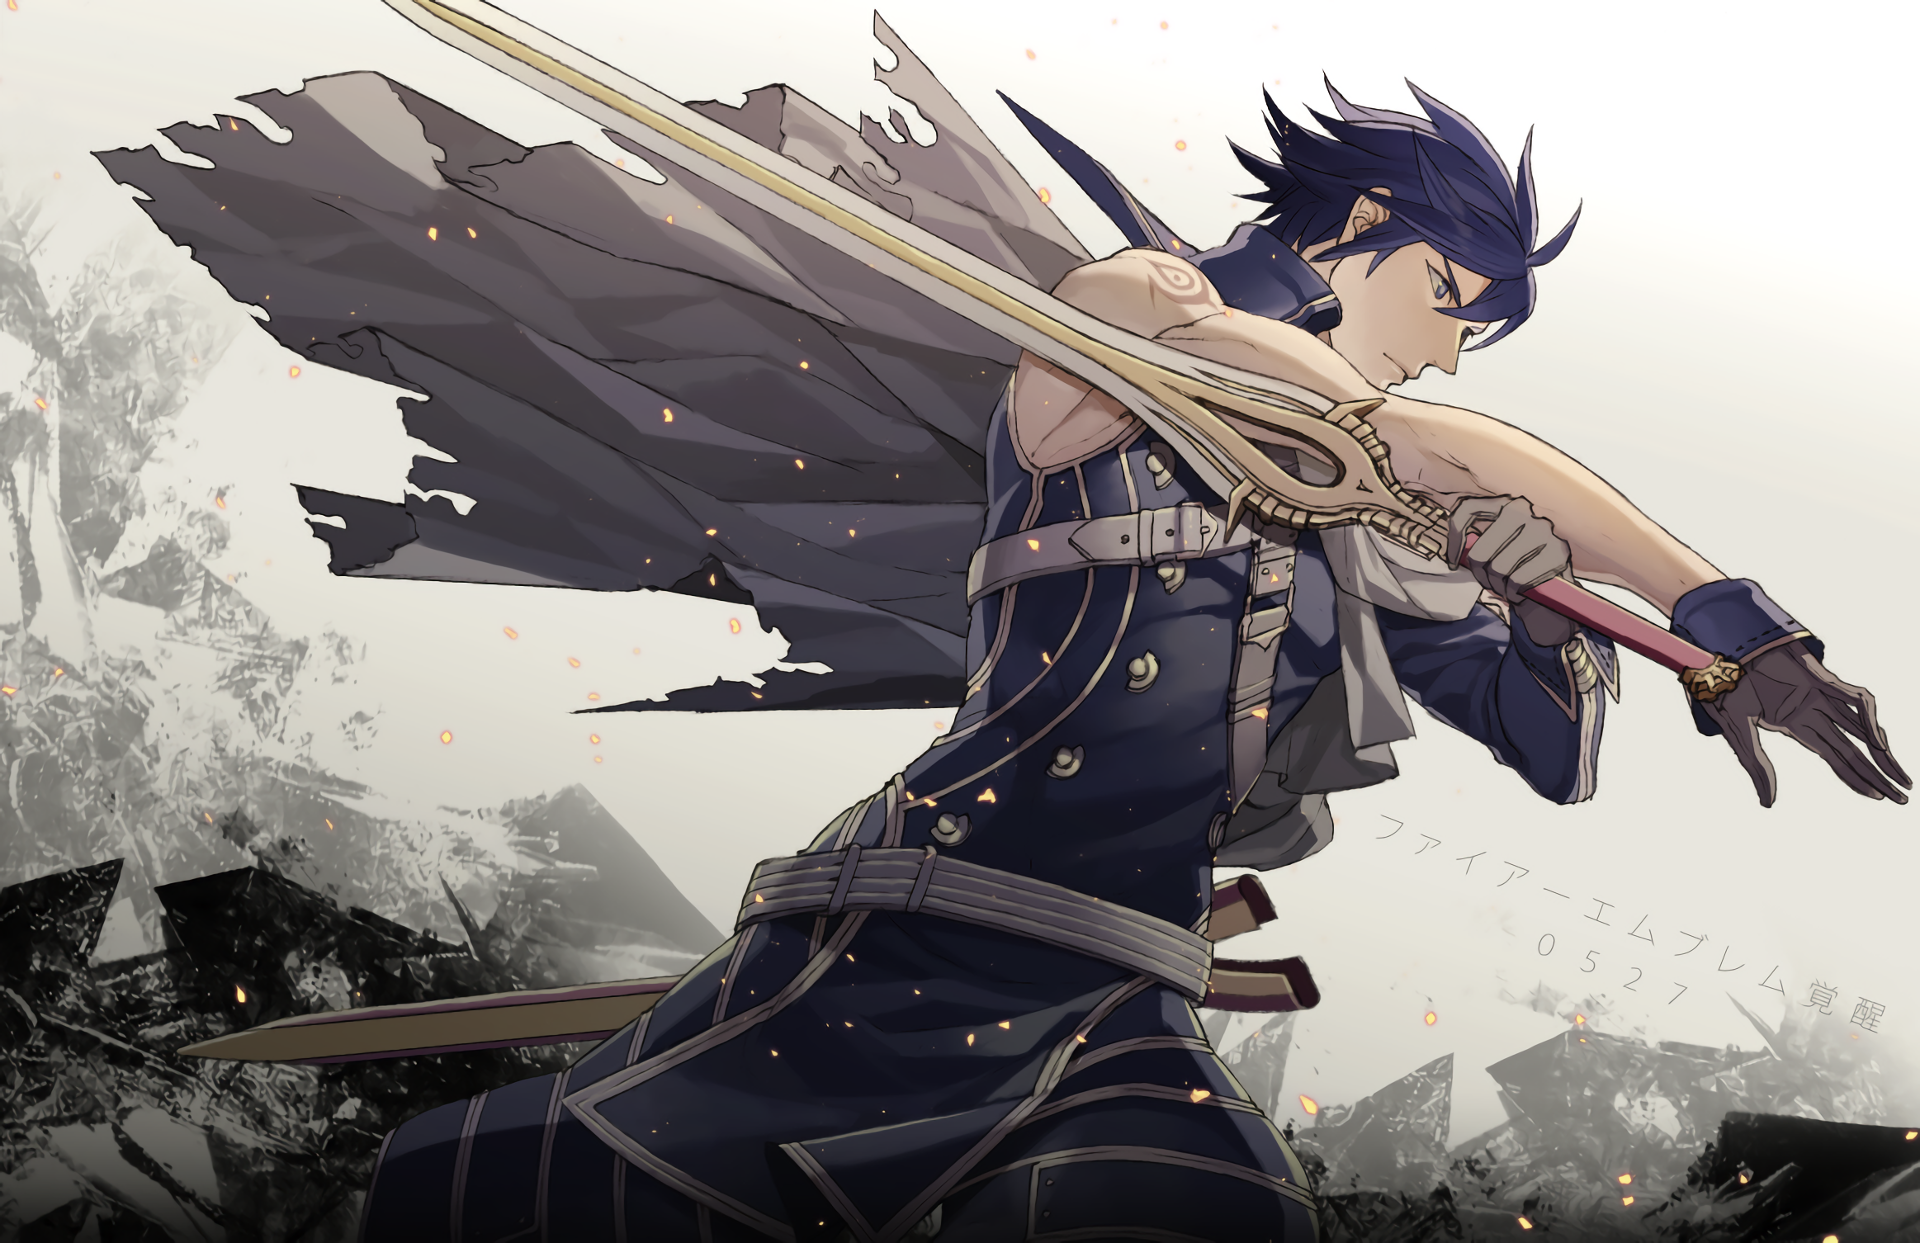 20 Chrom Fire Emblem Hd Wallpapers Background Images